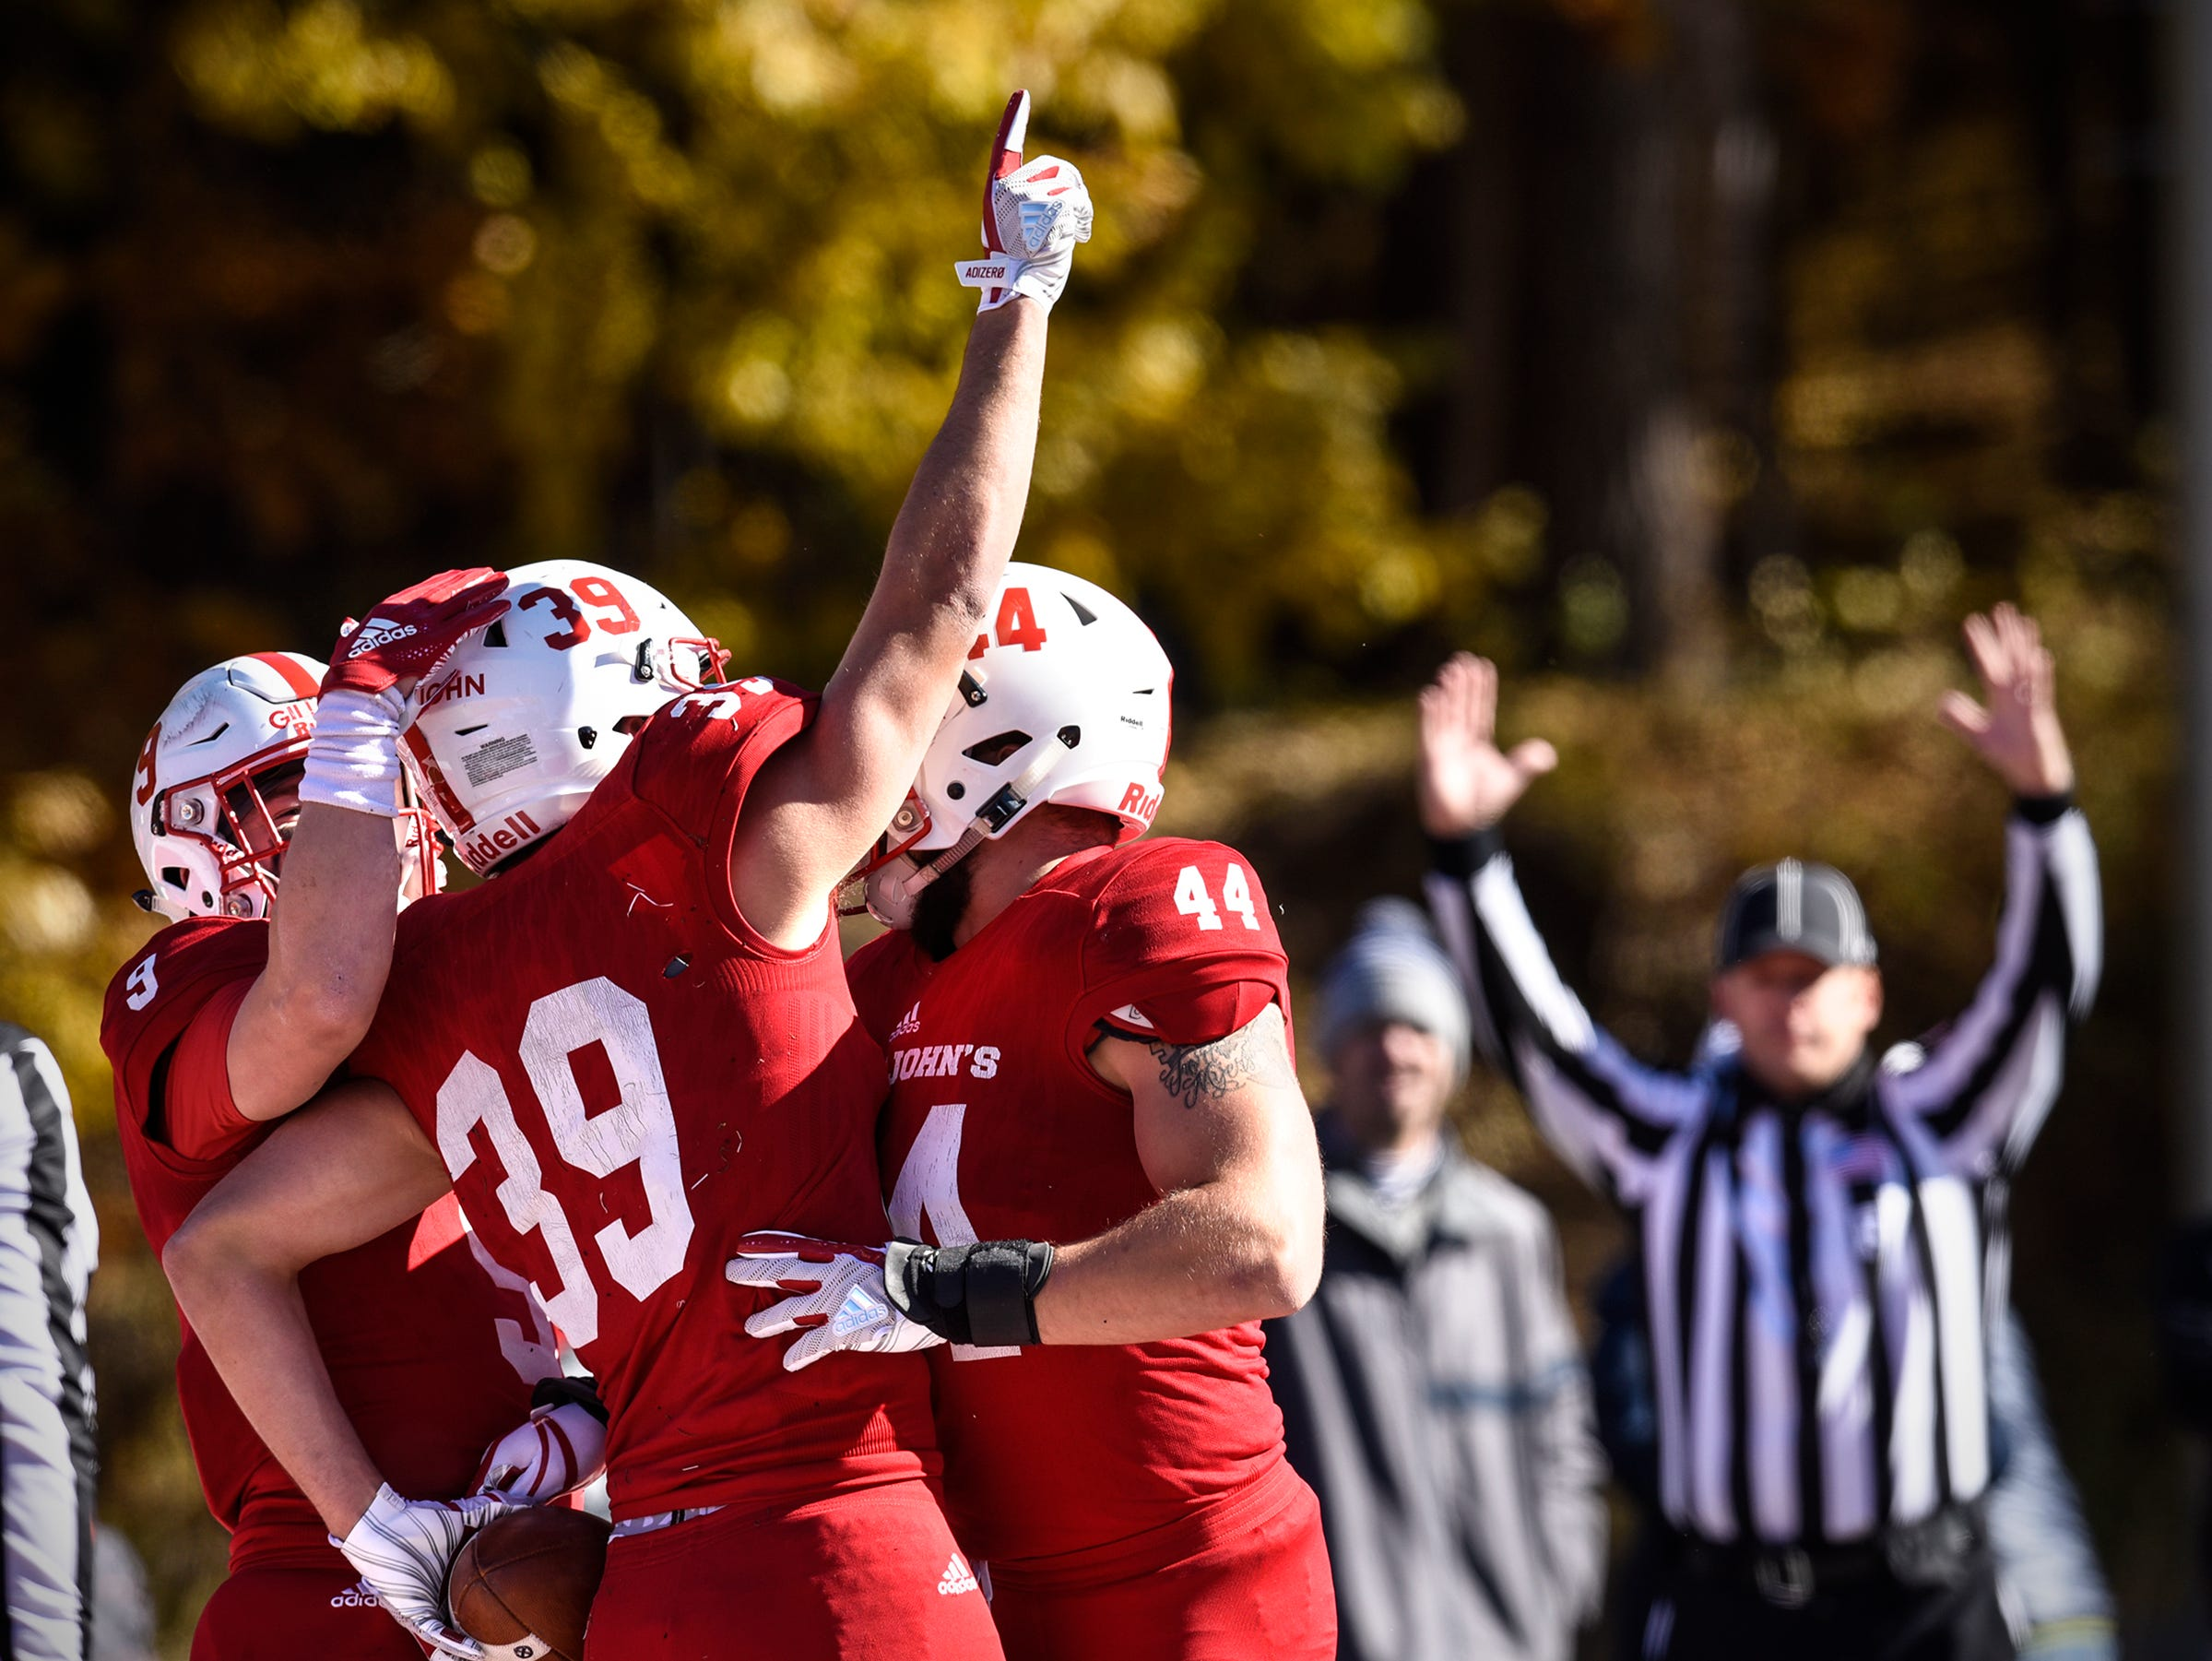 Tommy Auger raises his hand skyward in tribute to coach John Gagliardi after scoring a touchdown during the first half of the Saturday, Oct. 20, game against St. Olaf at Clemens Stadium in Collegeville